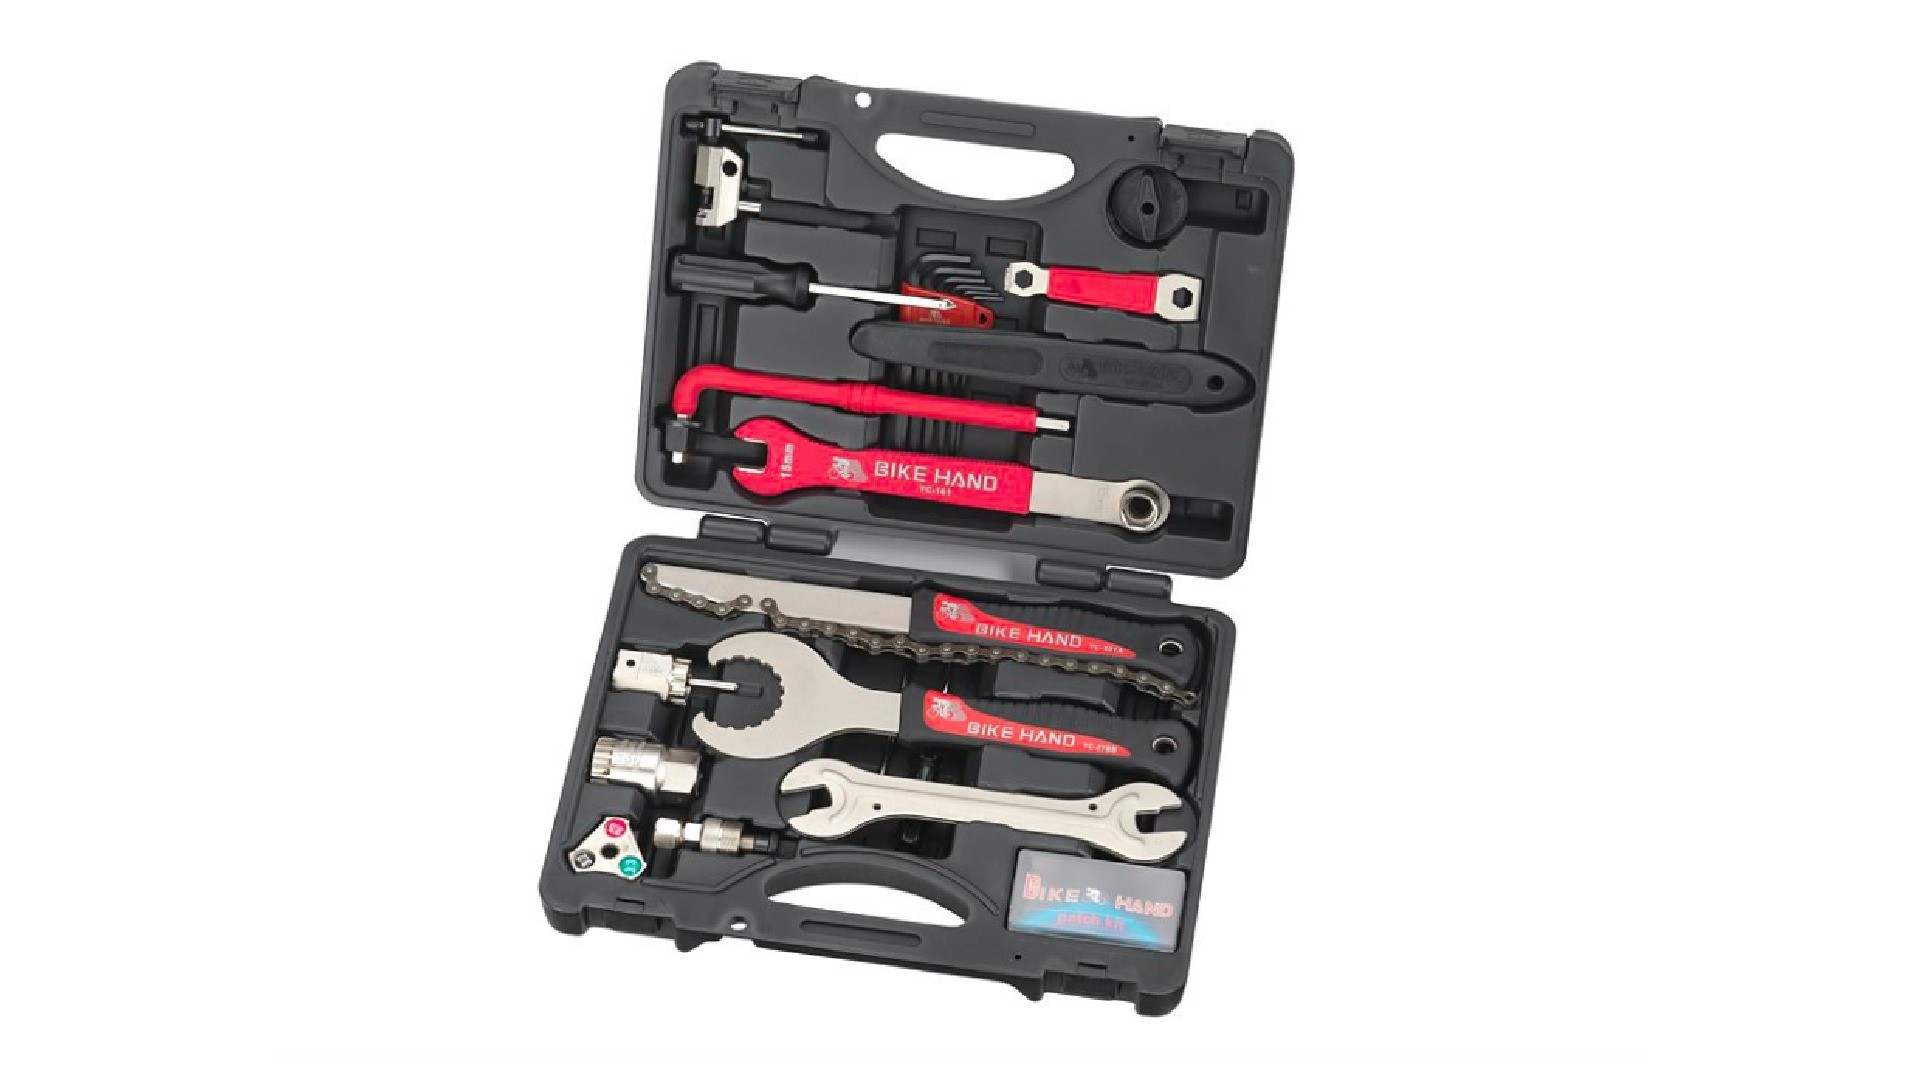 Start your home workshop with this selection of tools